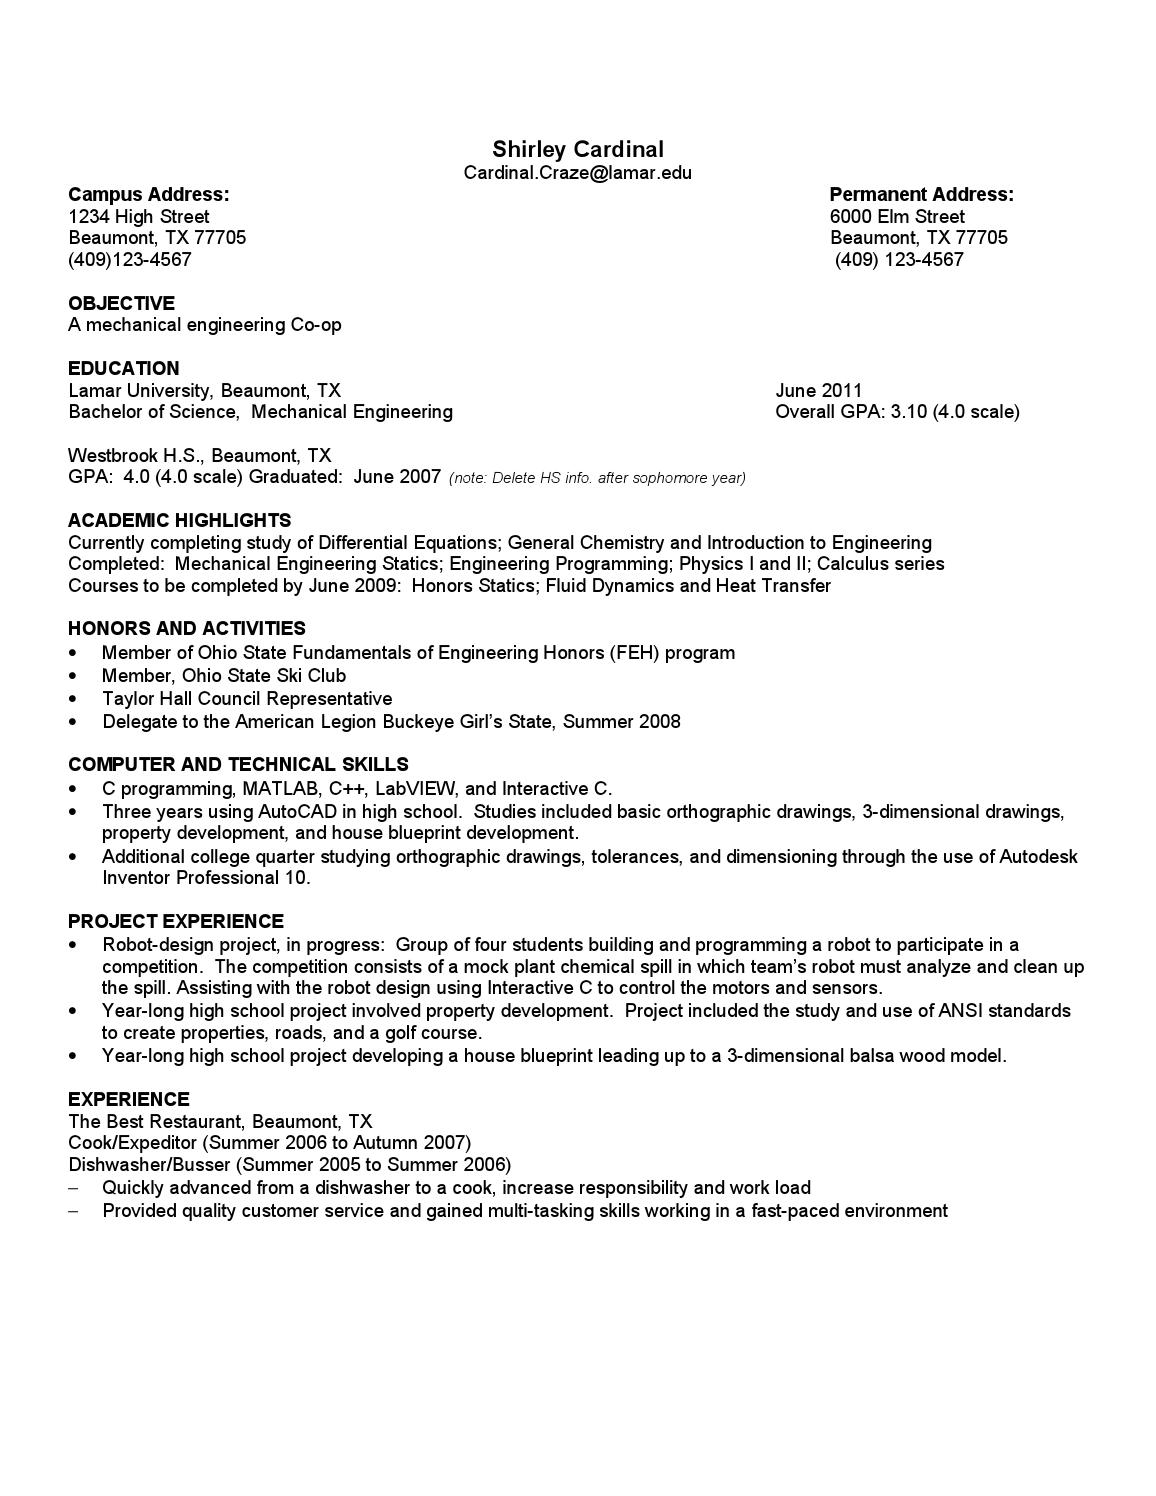 functional resume by lamar university dept  of career and